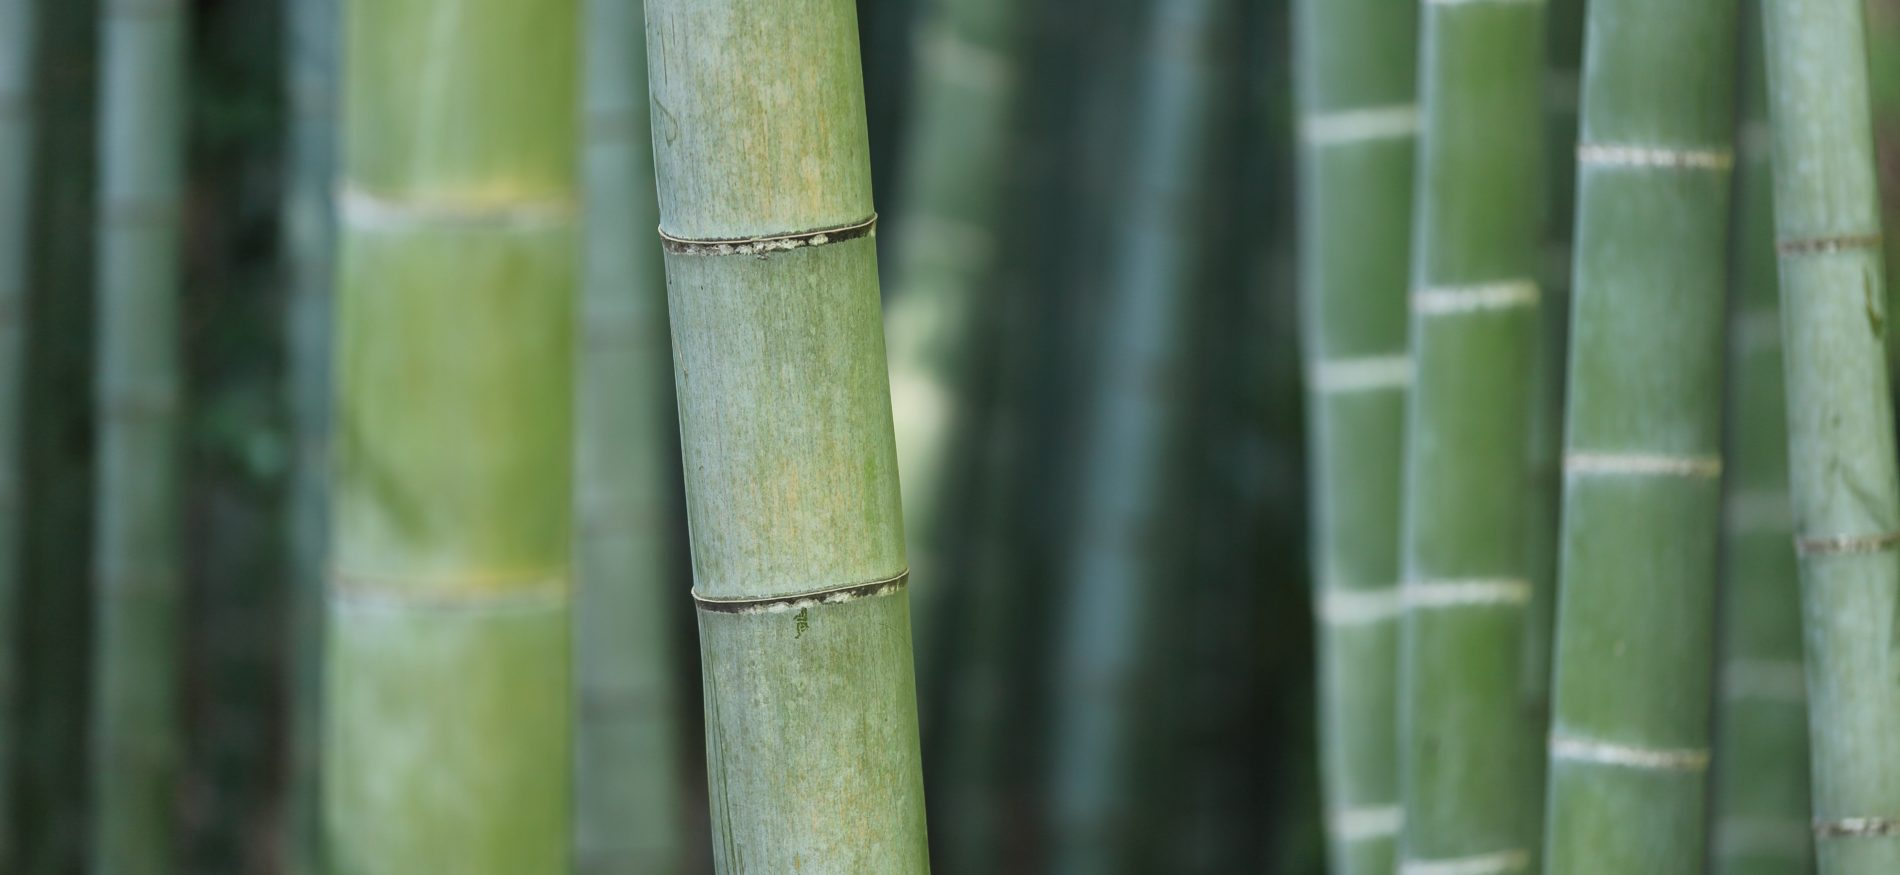 Bamboo plants - used in the production Nightire sleepwear